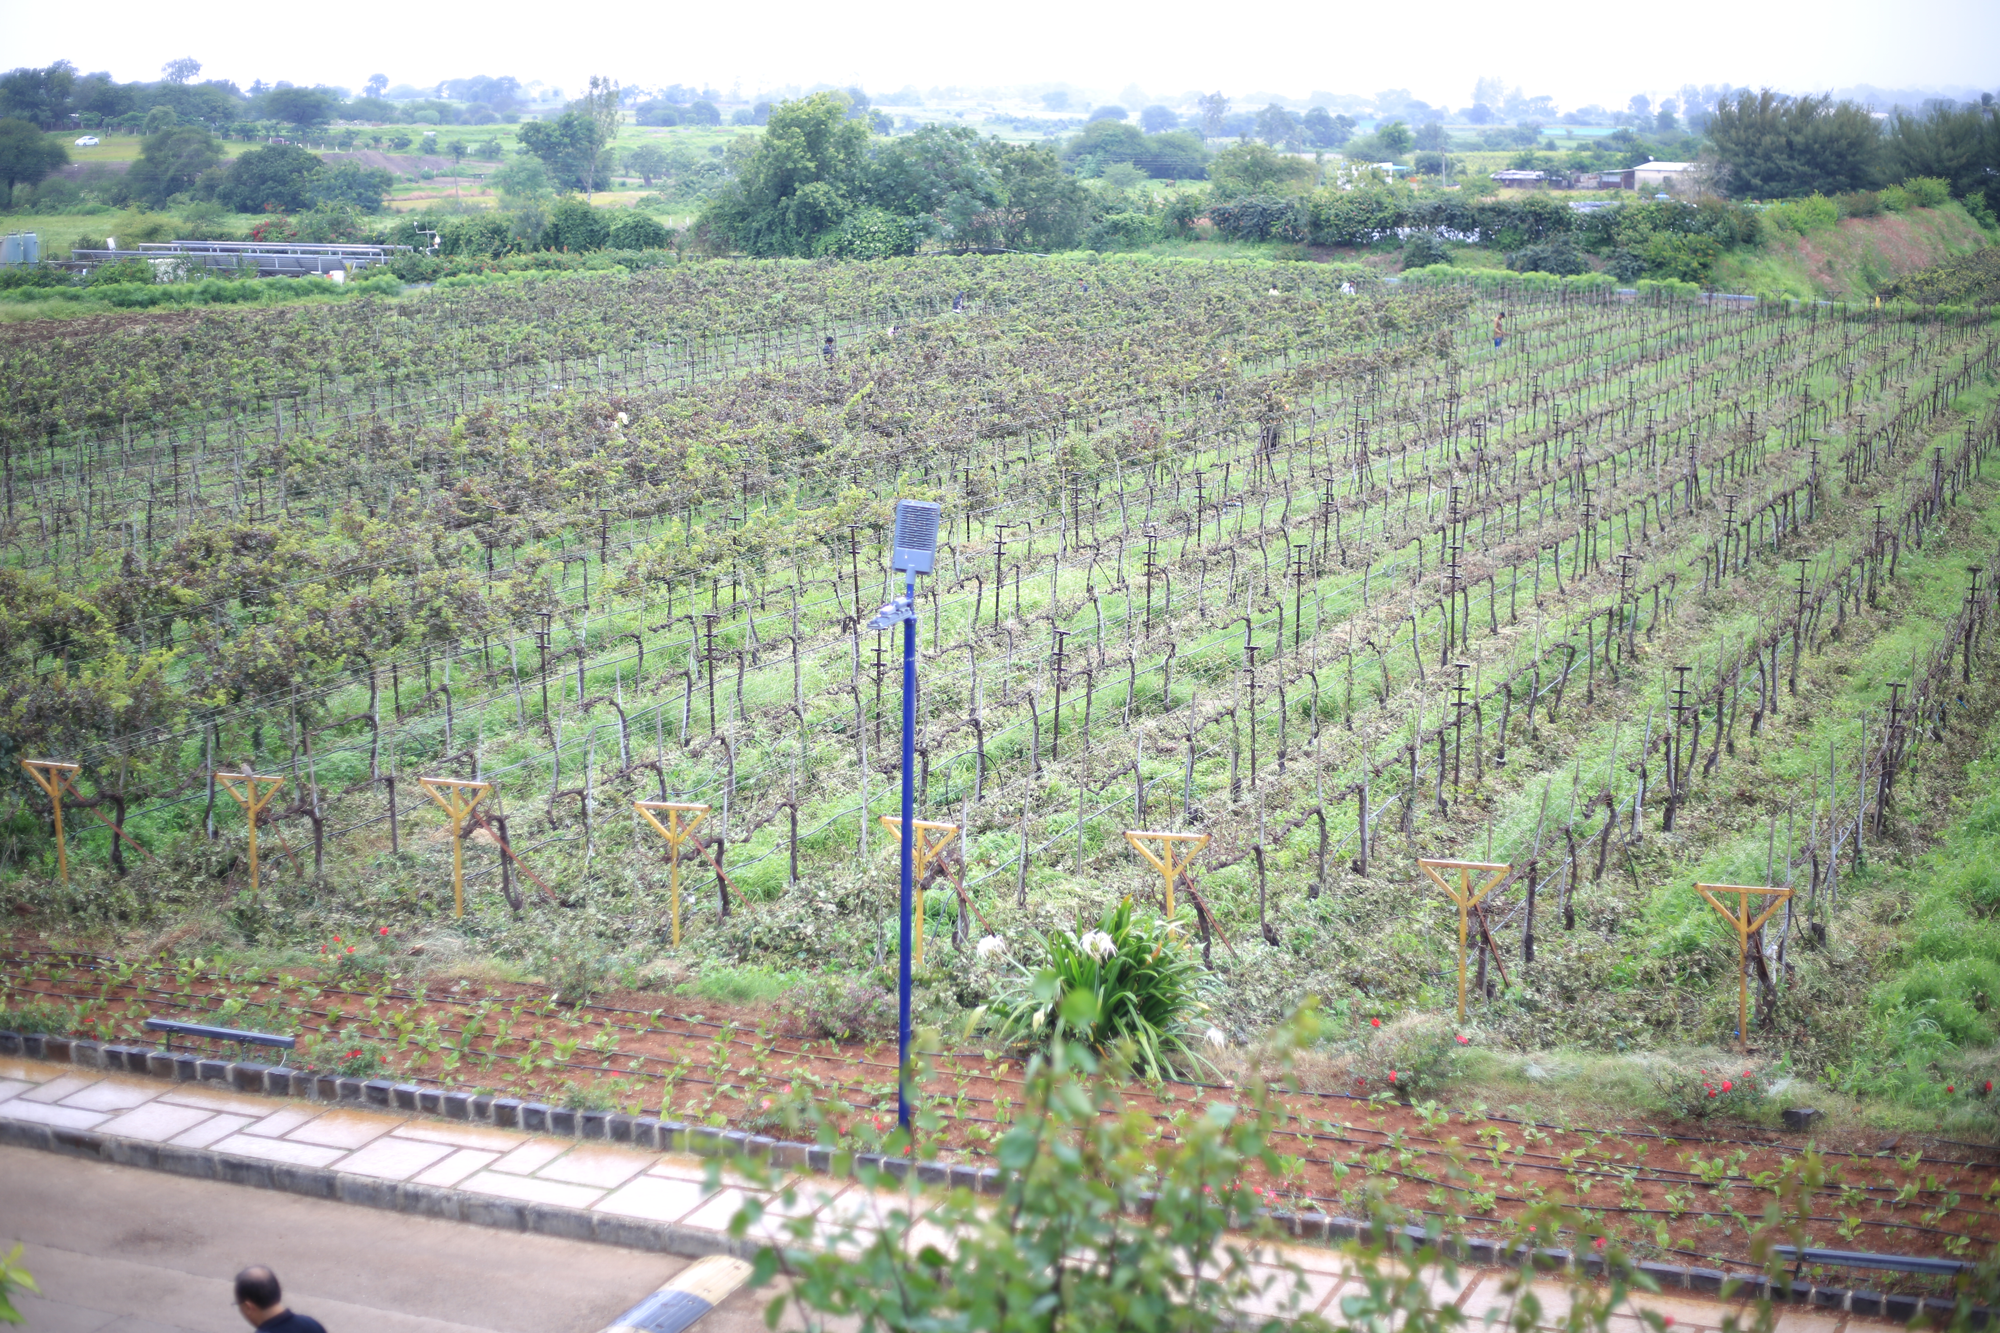 A view of Sula's vineyards on the outskirts of Nashik, India.